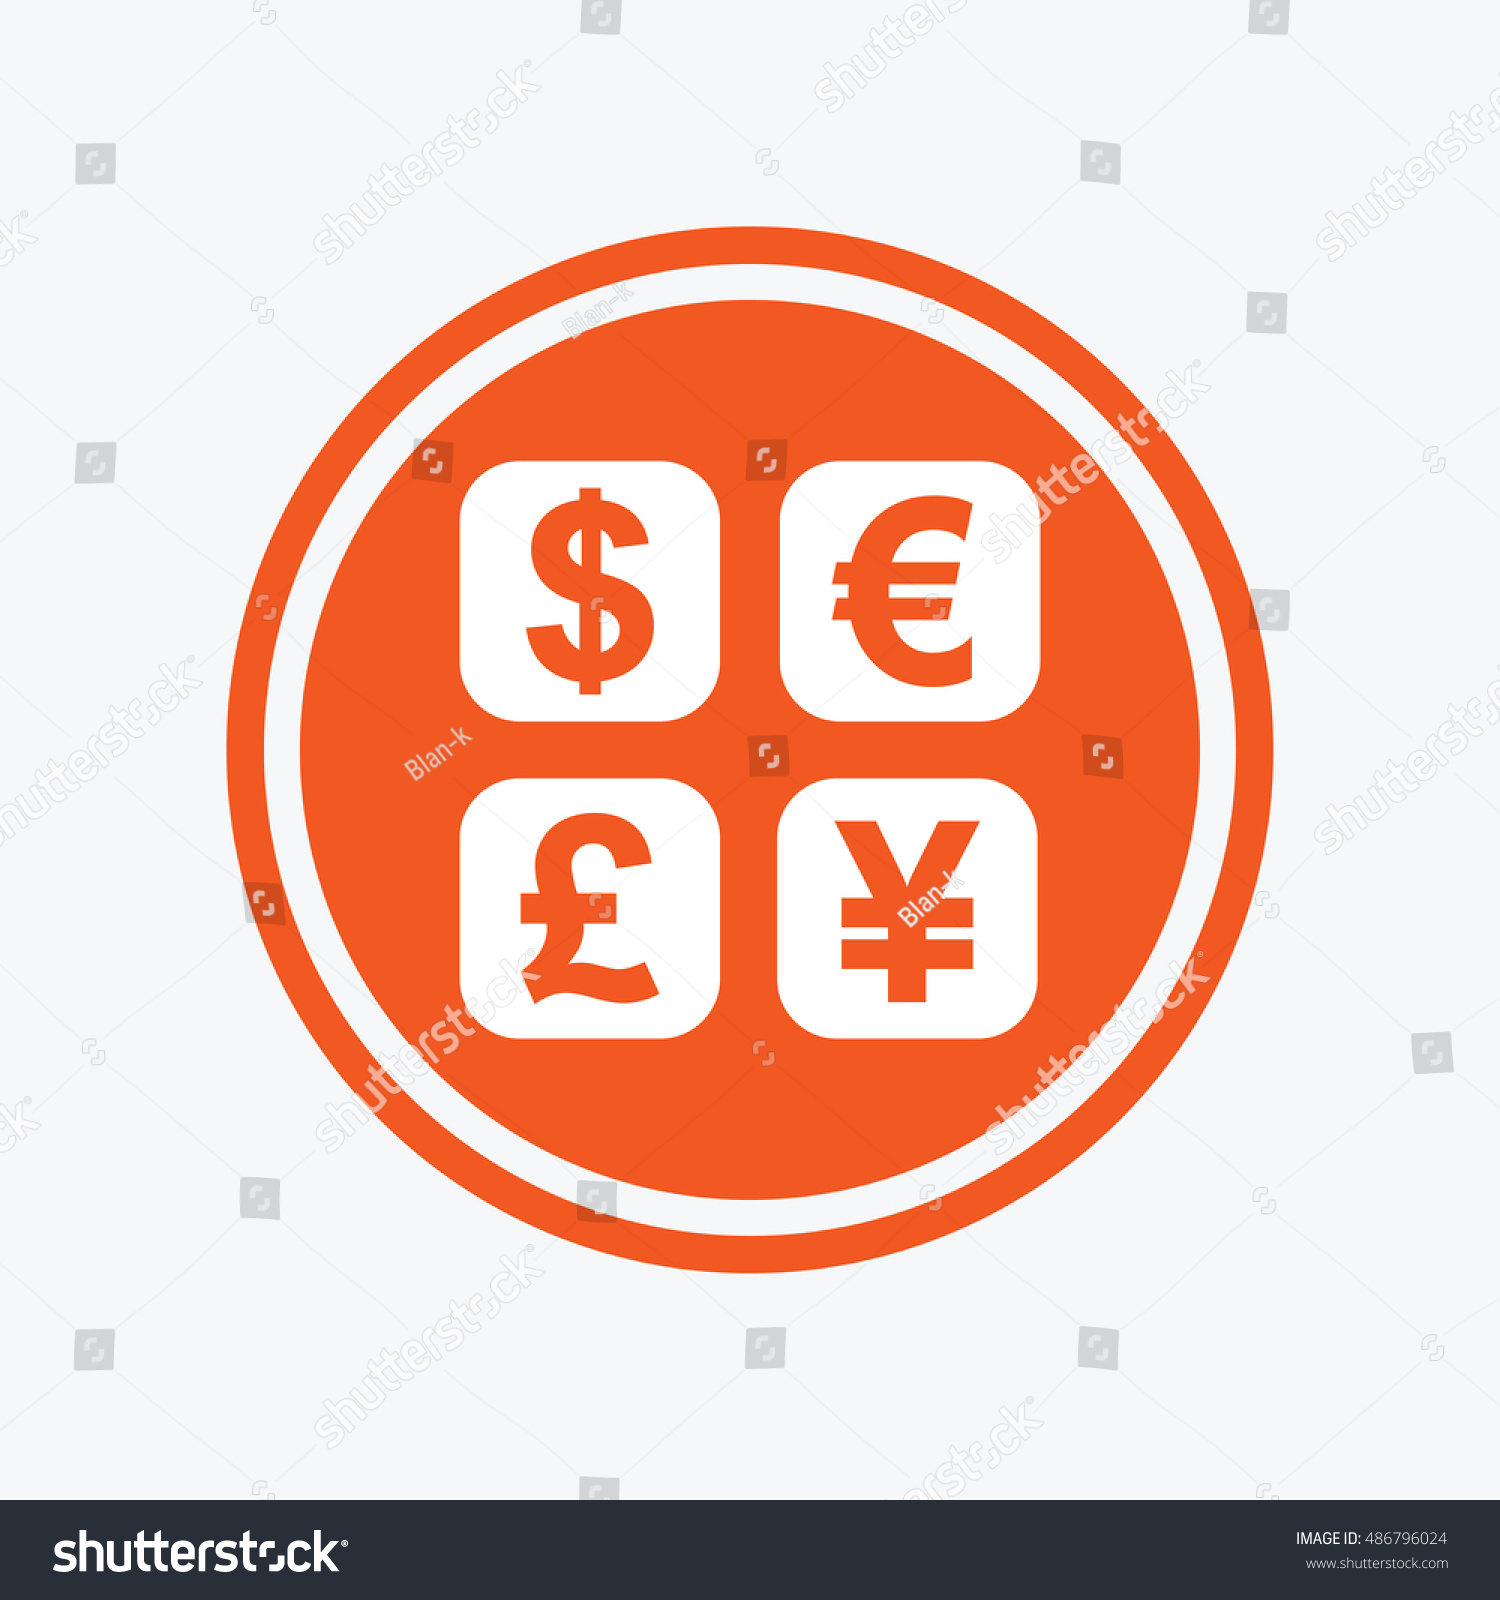 Currency exchange sign icon currency converter stock vector currency exchange sign icon currency converter symbol money label graphic design element biocorpaavc Gallery